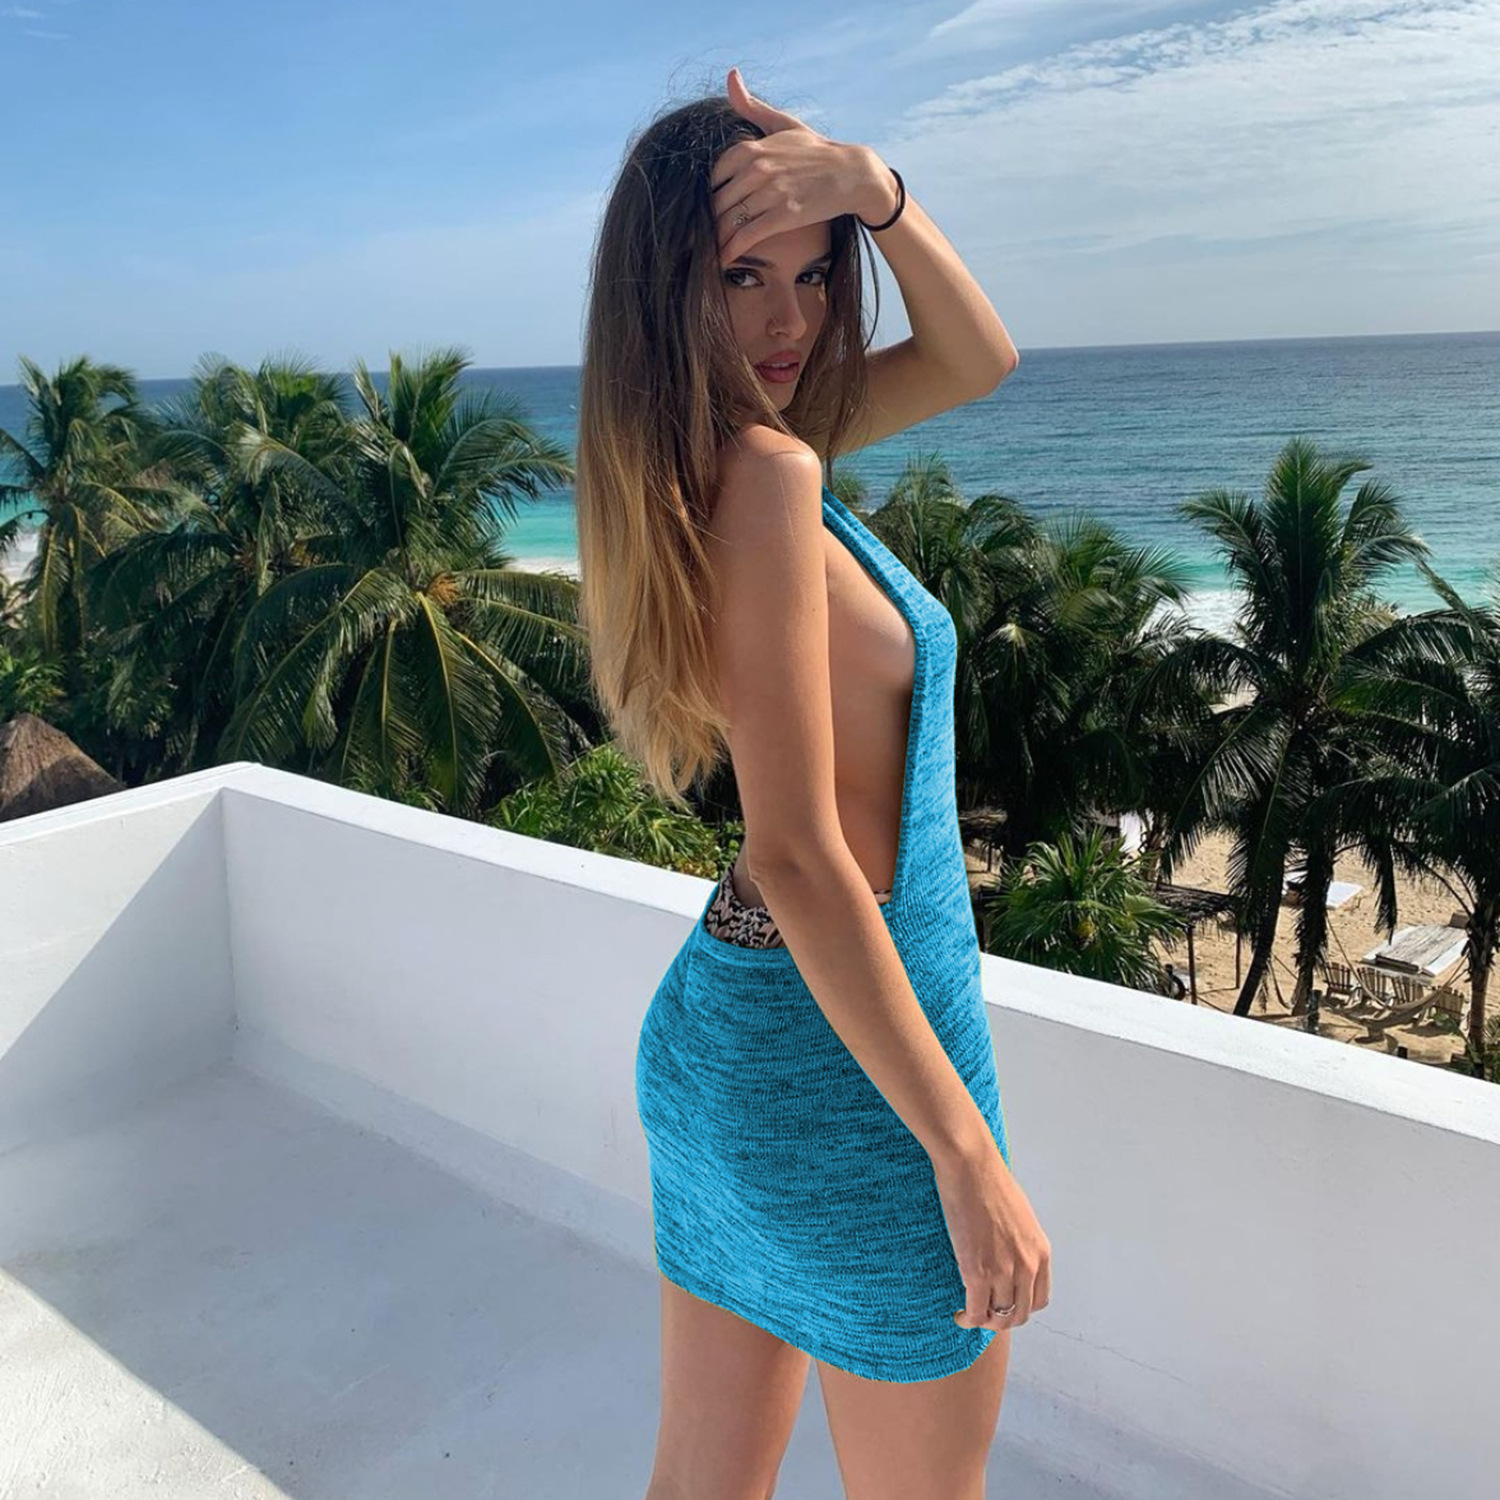 Cryptographic Halter Sexy Backless Mini Dresses Bodycon Skinny Club Party Sleeveless Knitted Dress Fall Streetwear Beach Holiday 5